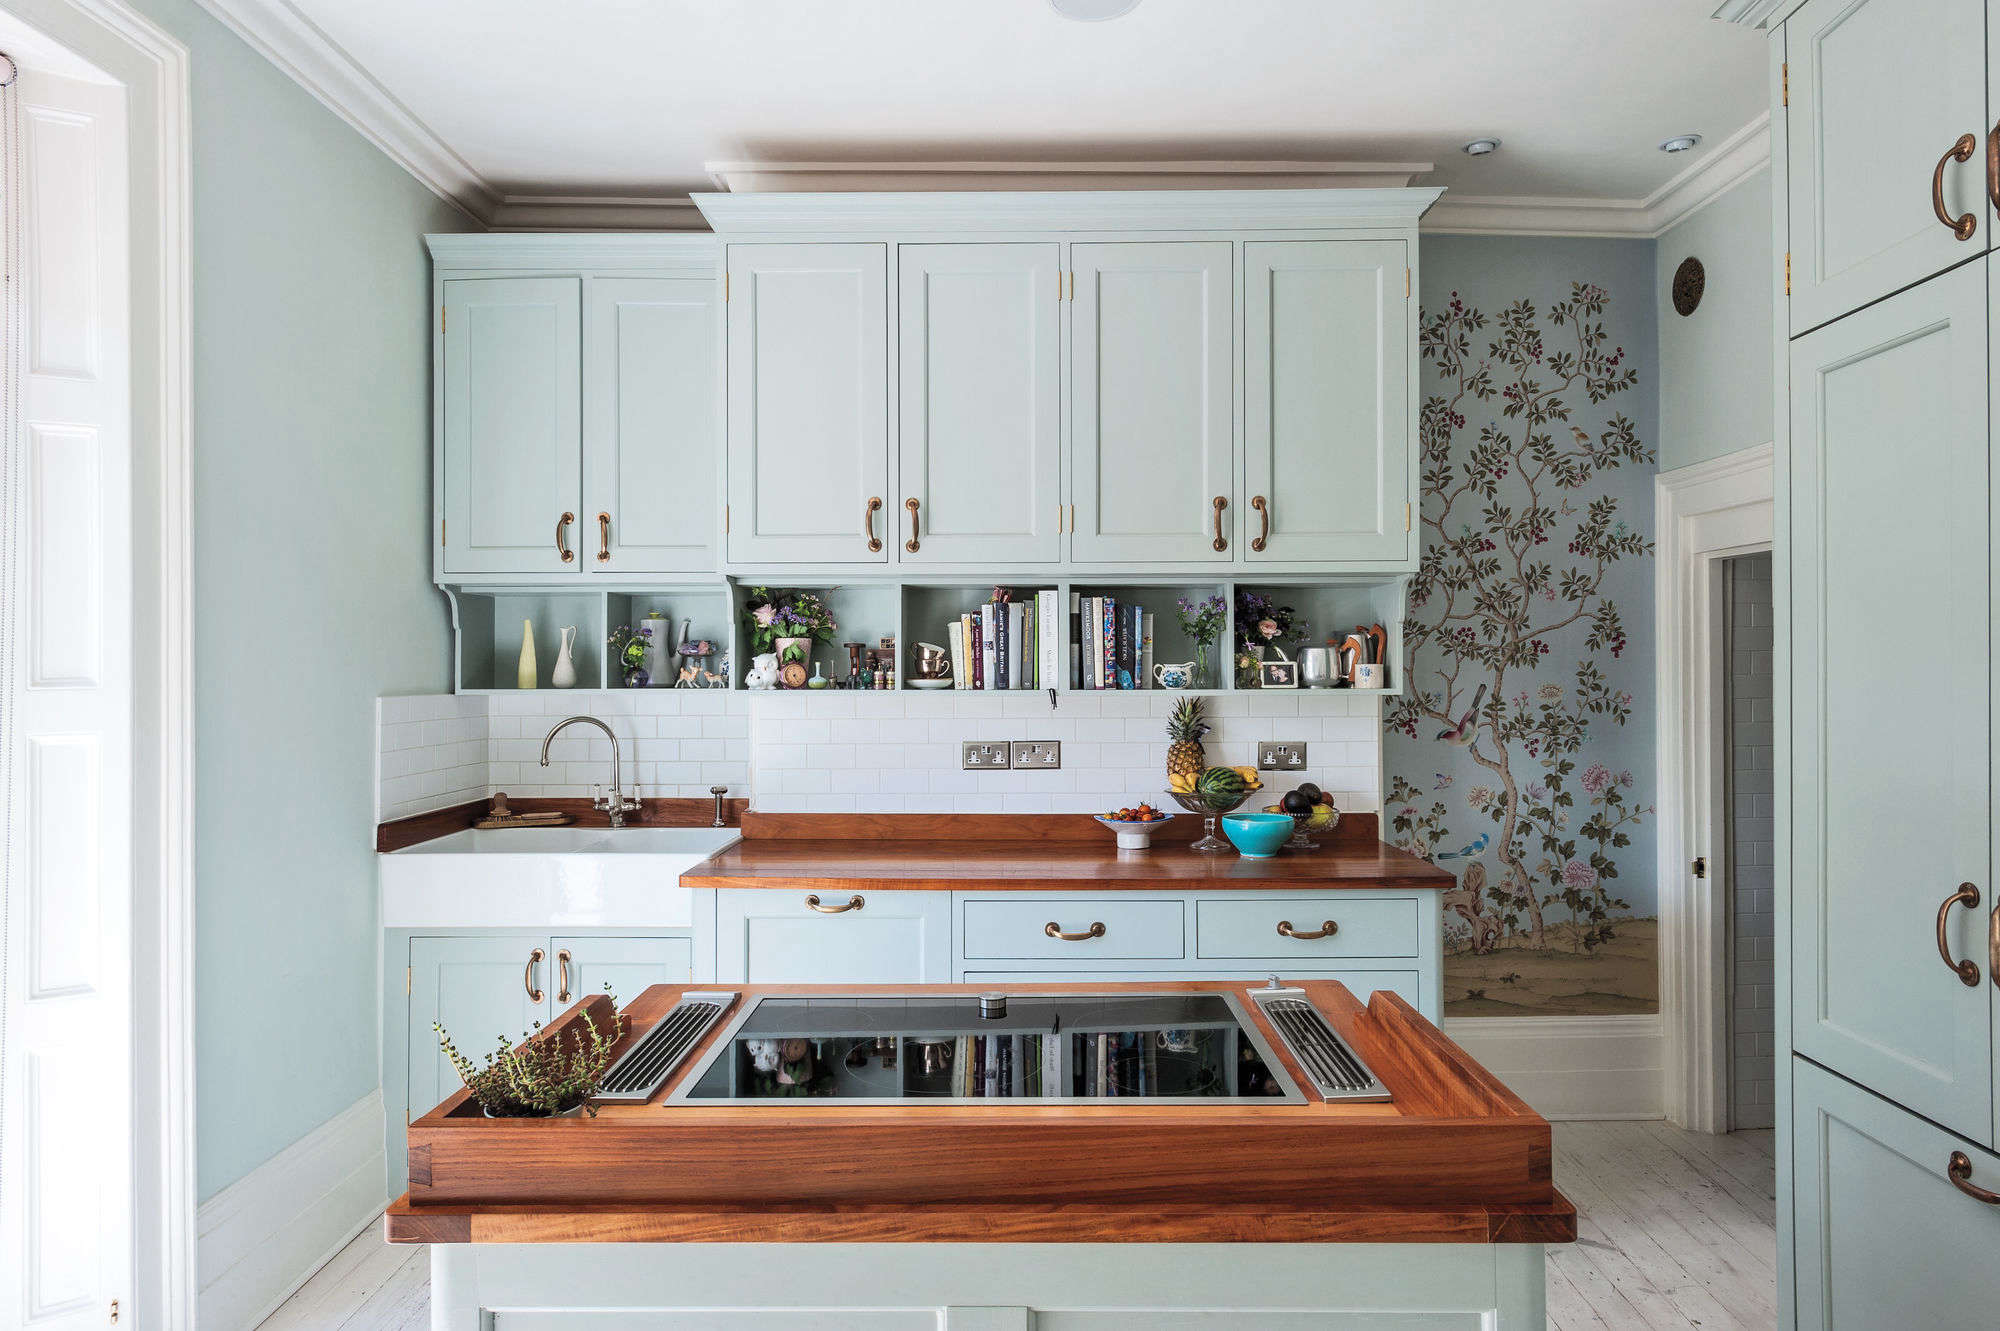 The Shaker cabinets, cooktop island, and cherry counters were designed and constructed by brothers Ben and Tim Goodingham. Photograph by Matthew Williams forRemodelista: A Manual for the Considered Home.